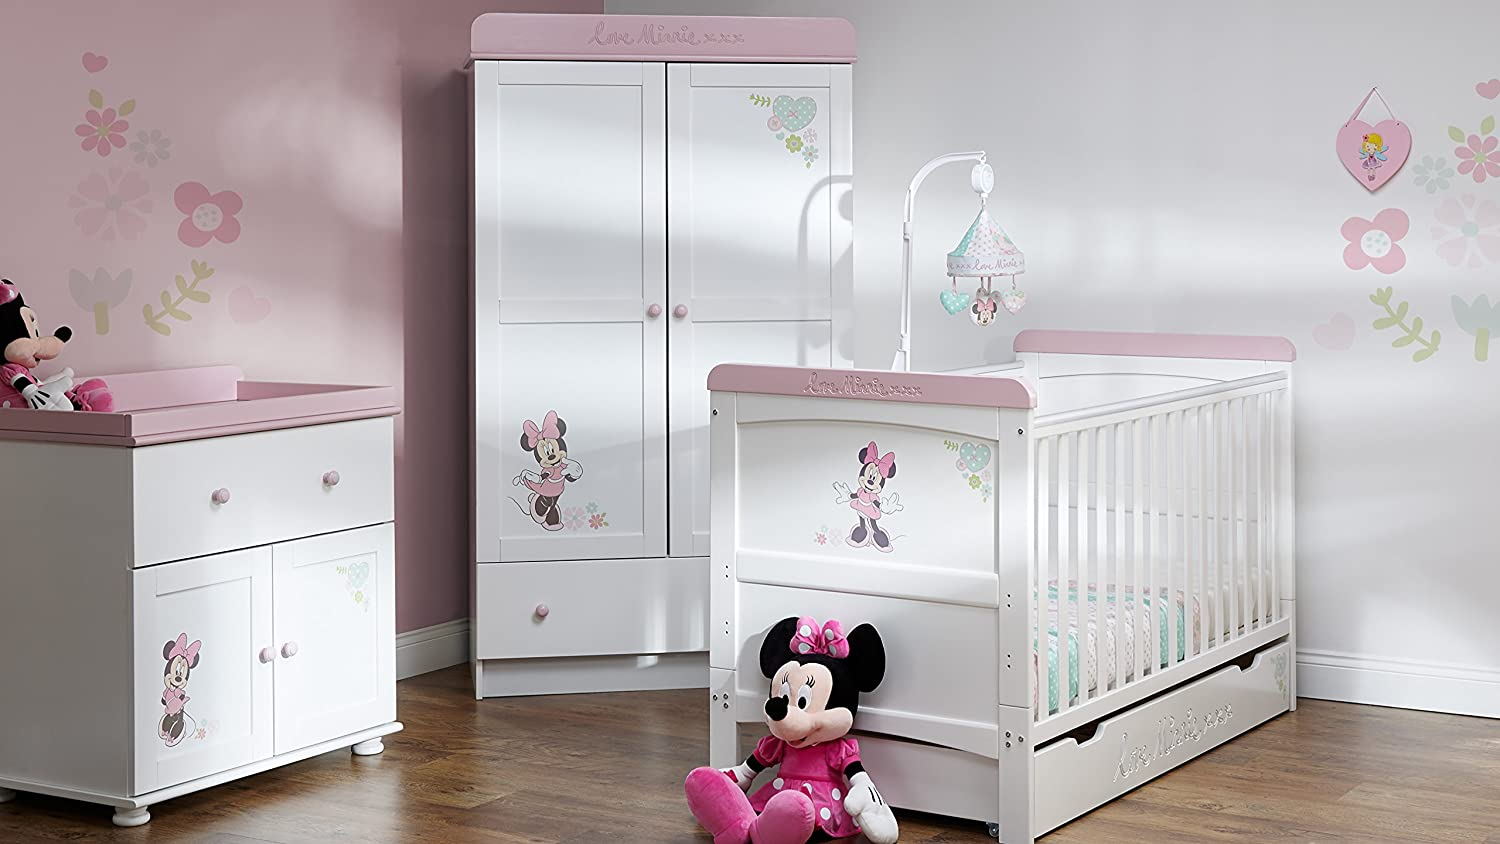 Disney Minnie Mouse 3 Möbel Kinderzimmer Set – Love Minnie günstig